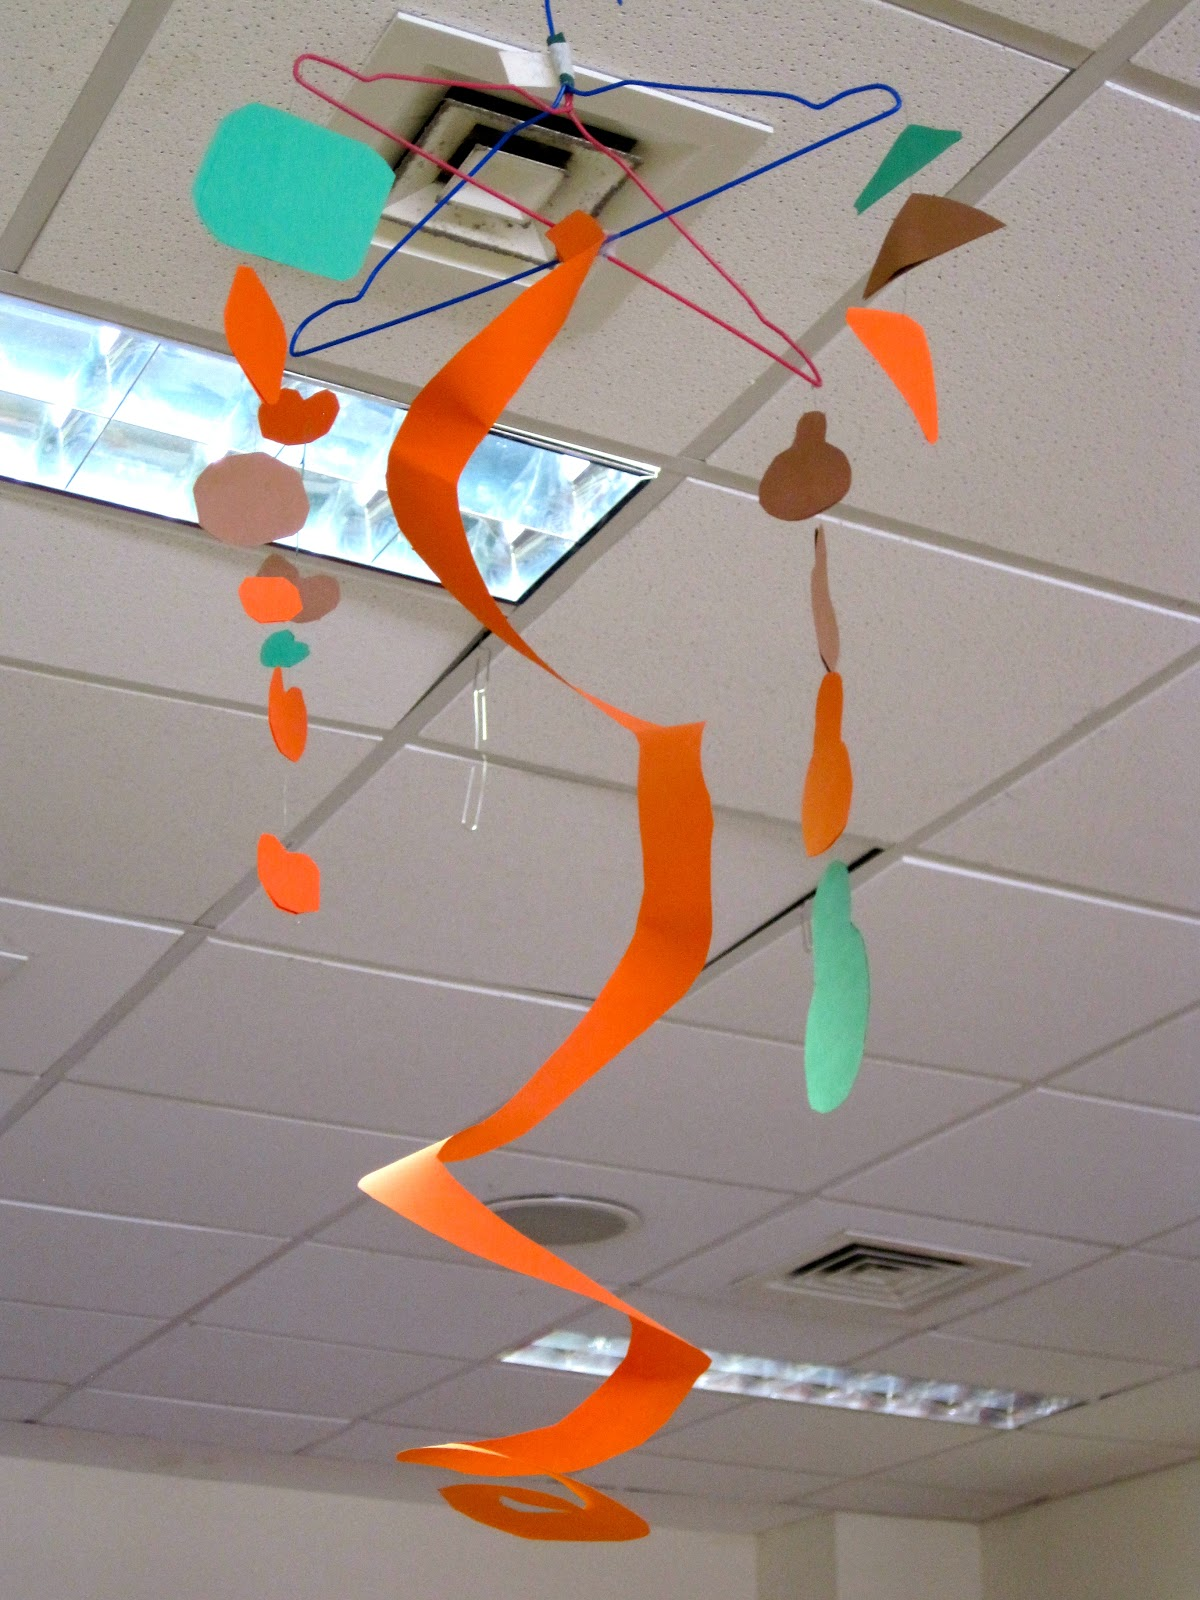 Princess Artypants Visual Arts In The Pyp Kinetic Sculpture